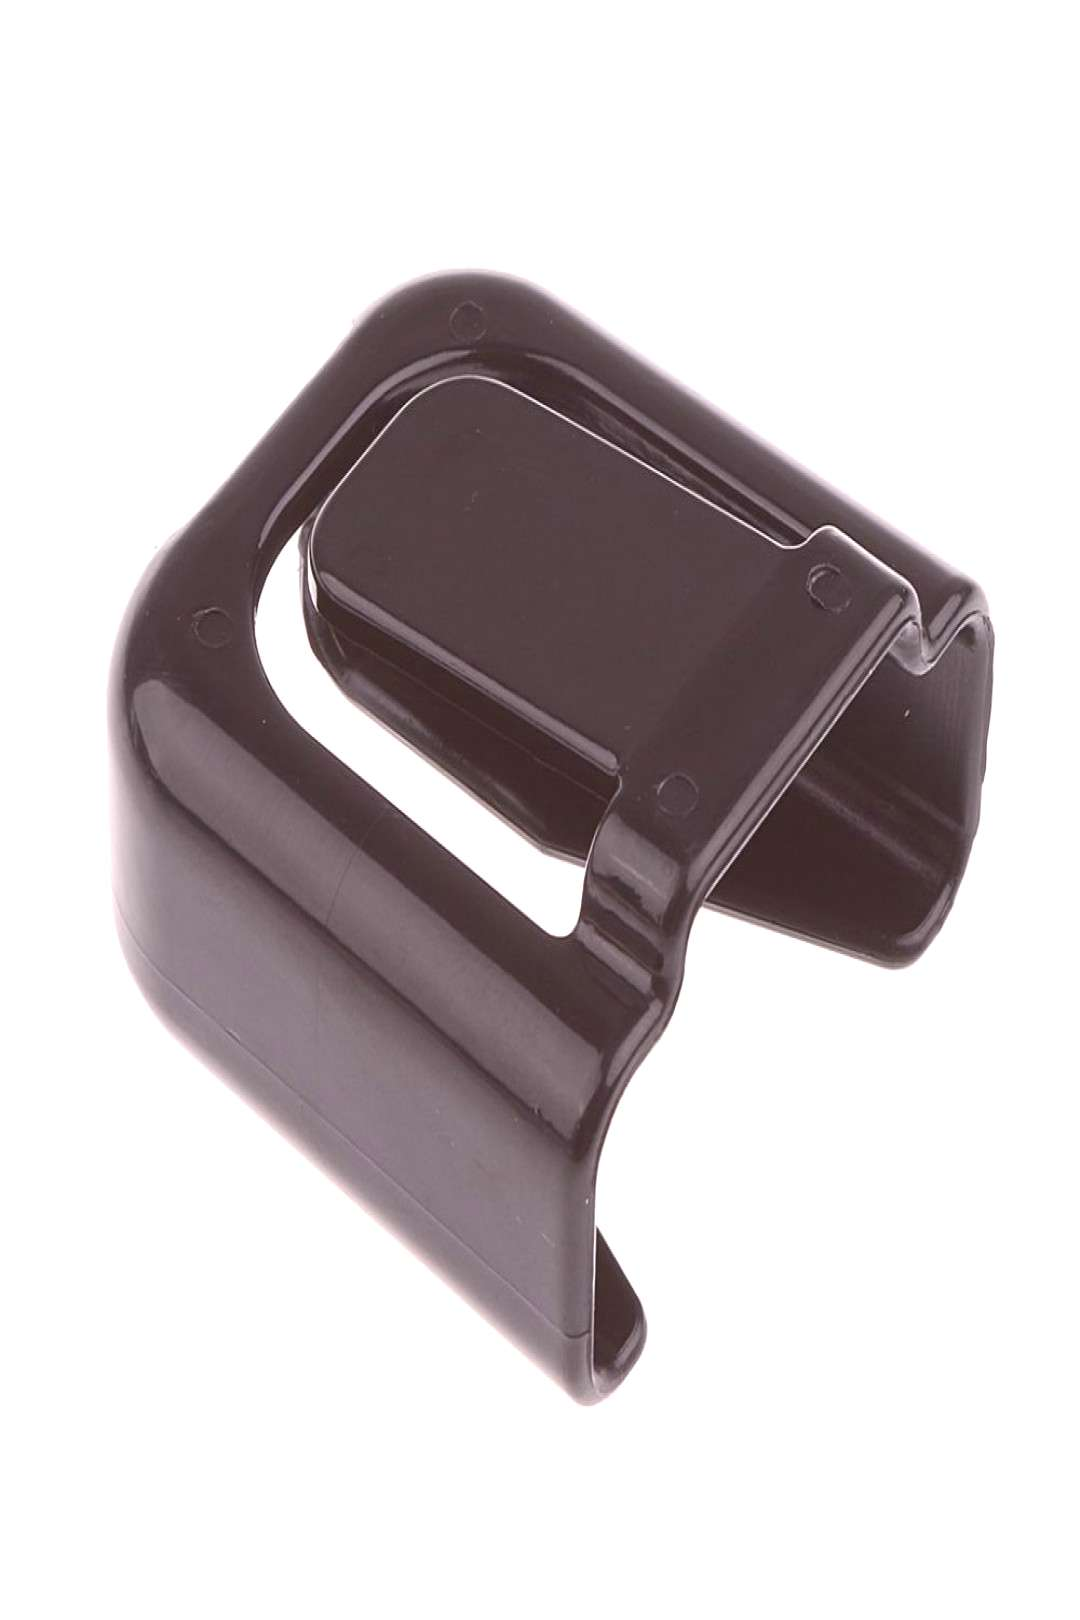 High Quality Universal Stethoscope Belt Clip Hip Holder Medical Care - Black Price: $14.00   {#belu